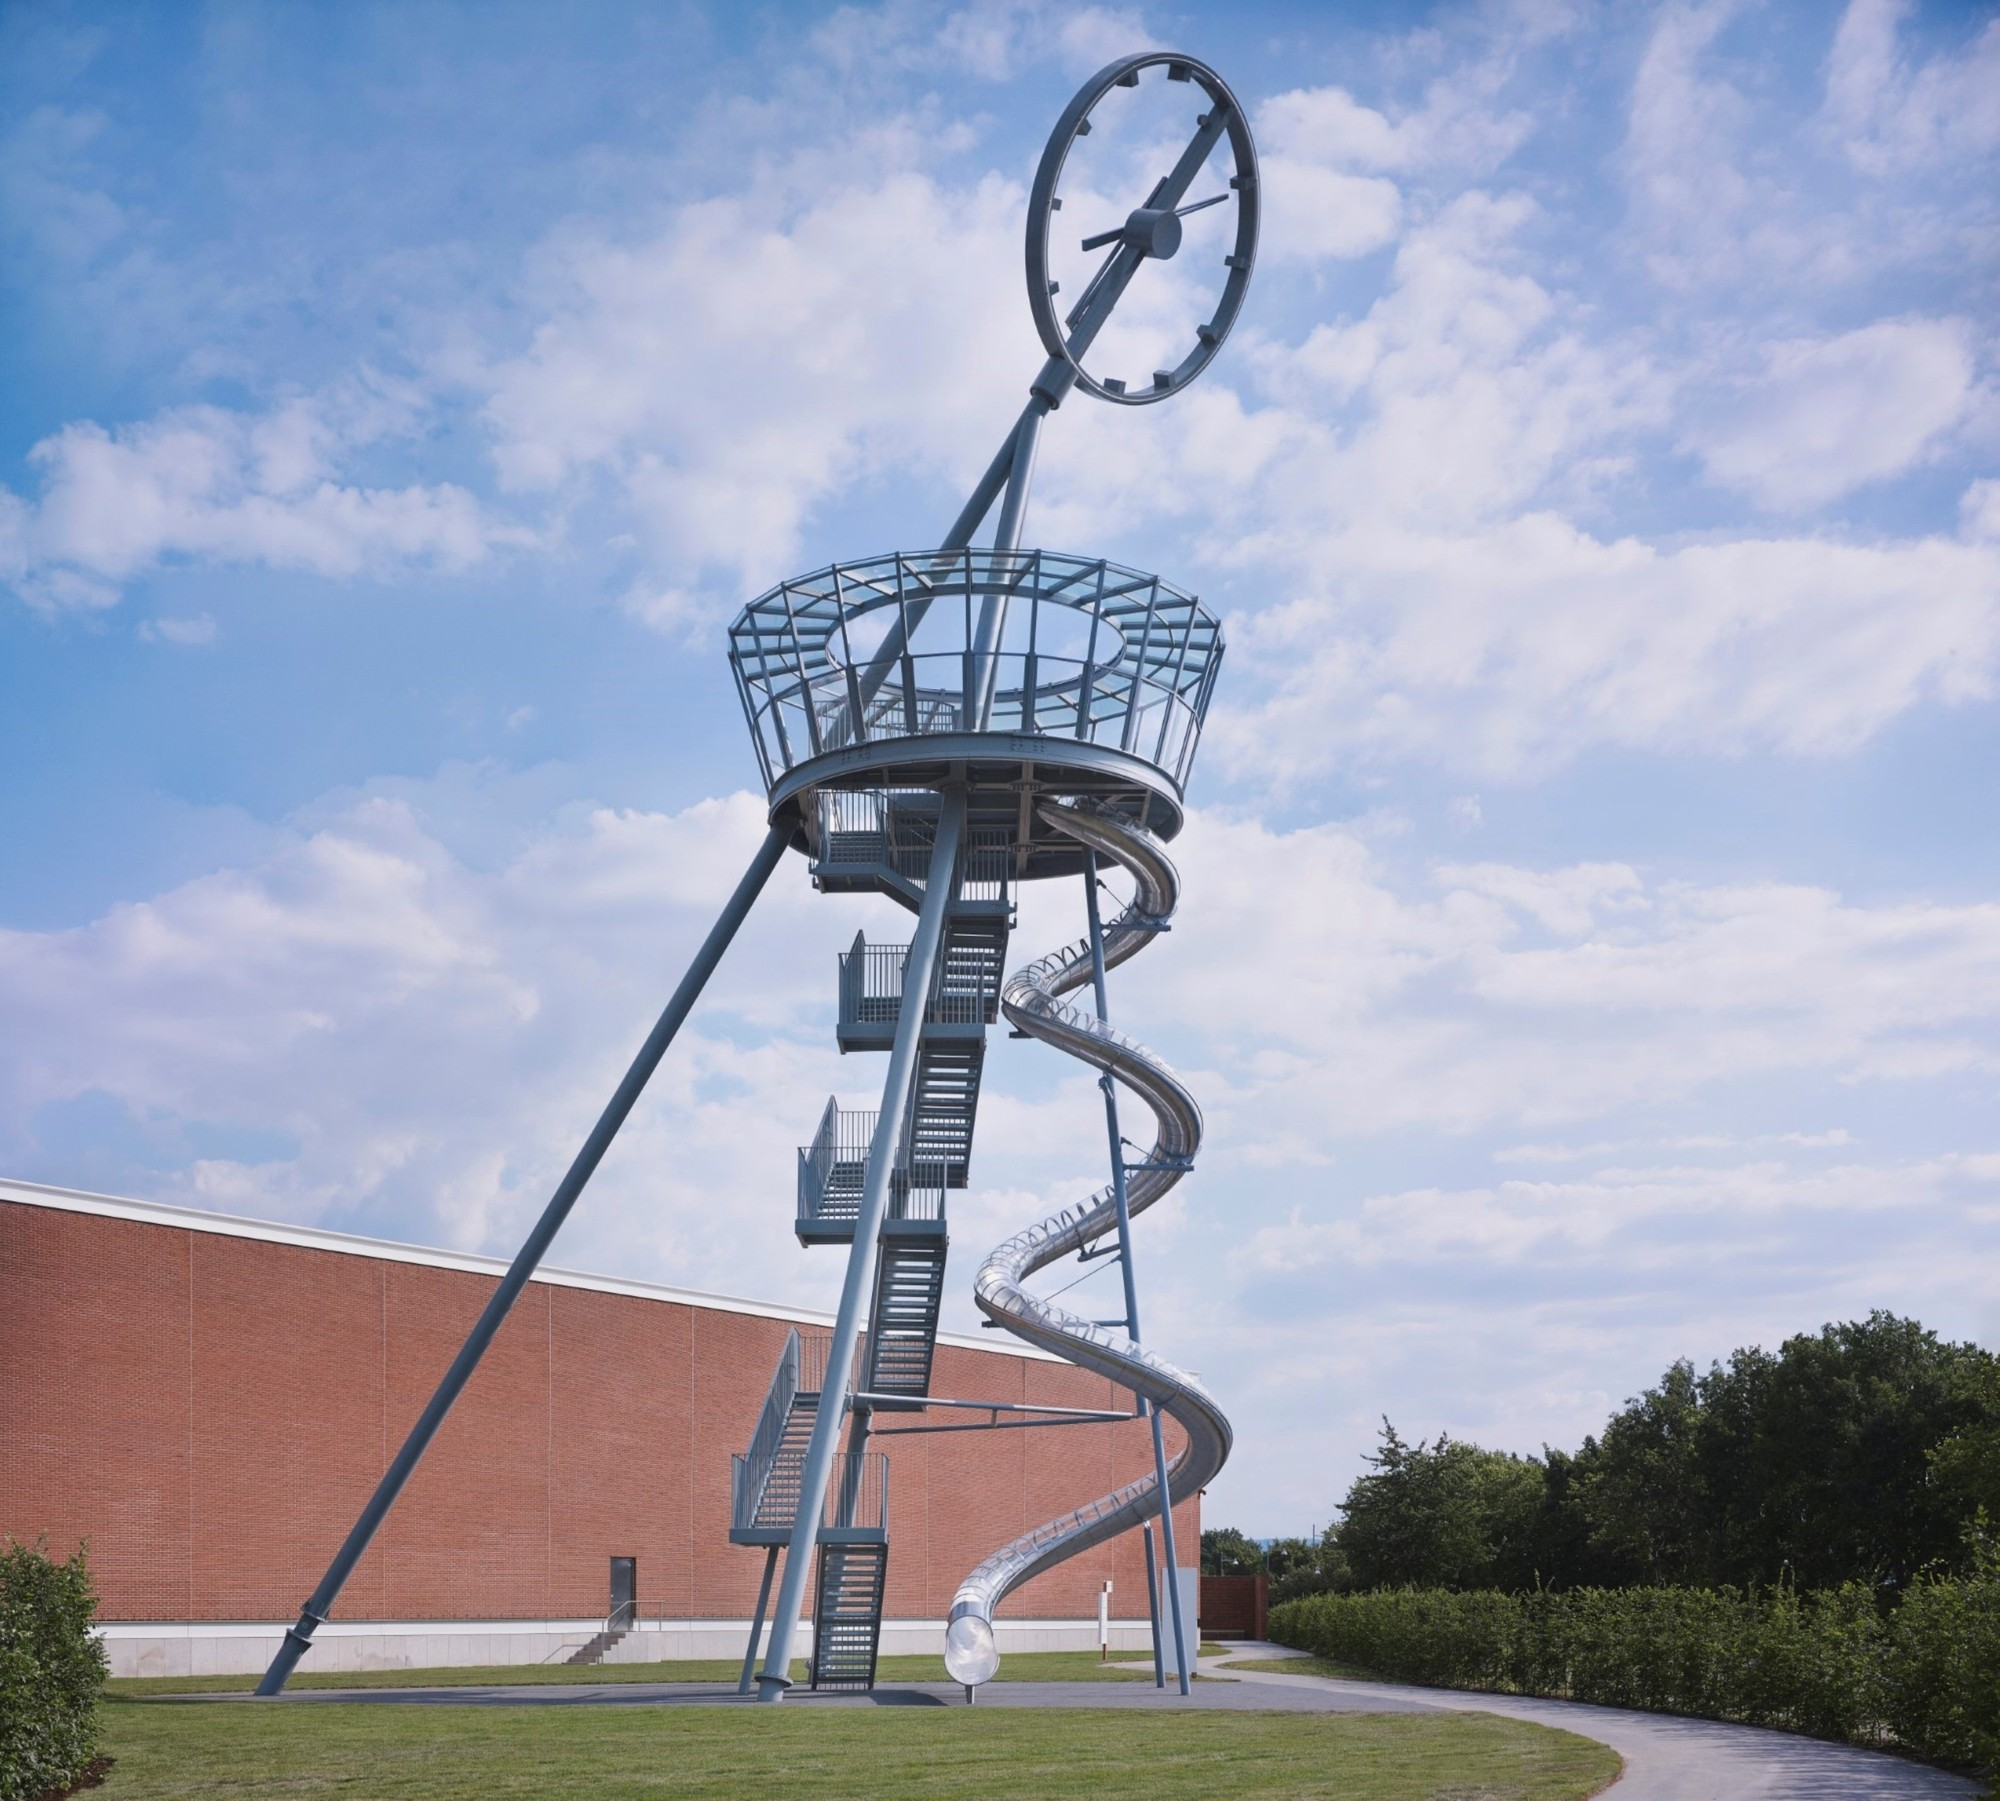 Vitra Campus Adds A Viewing Tower With a Slide, Vitra Slide Tower / Carsten Höller. Image © Vitra